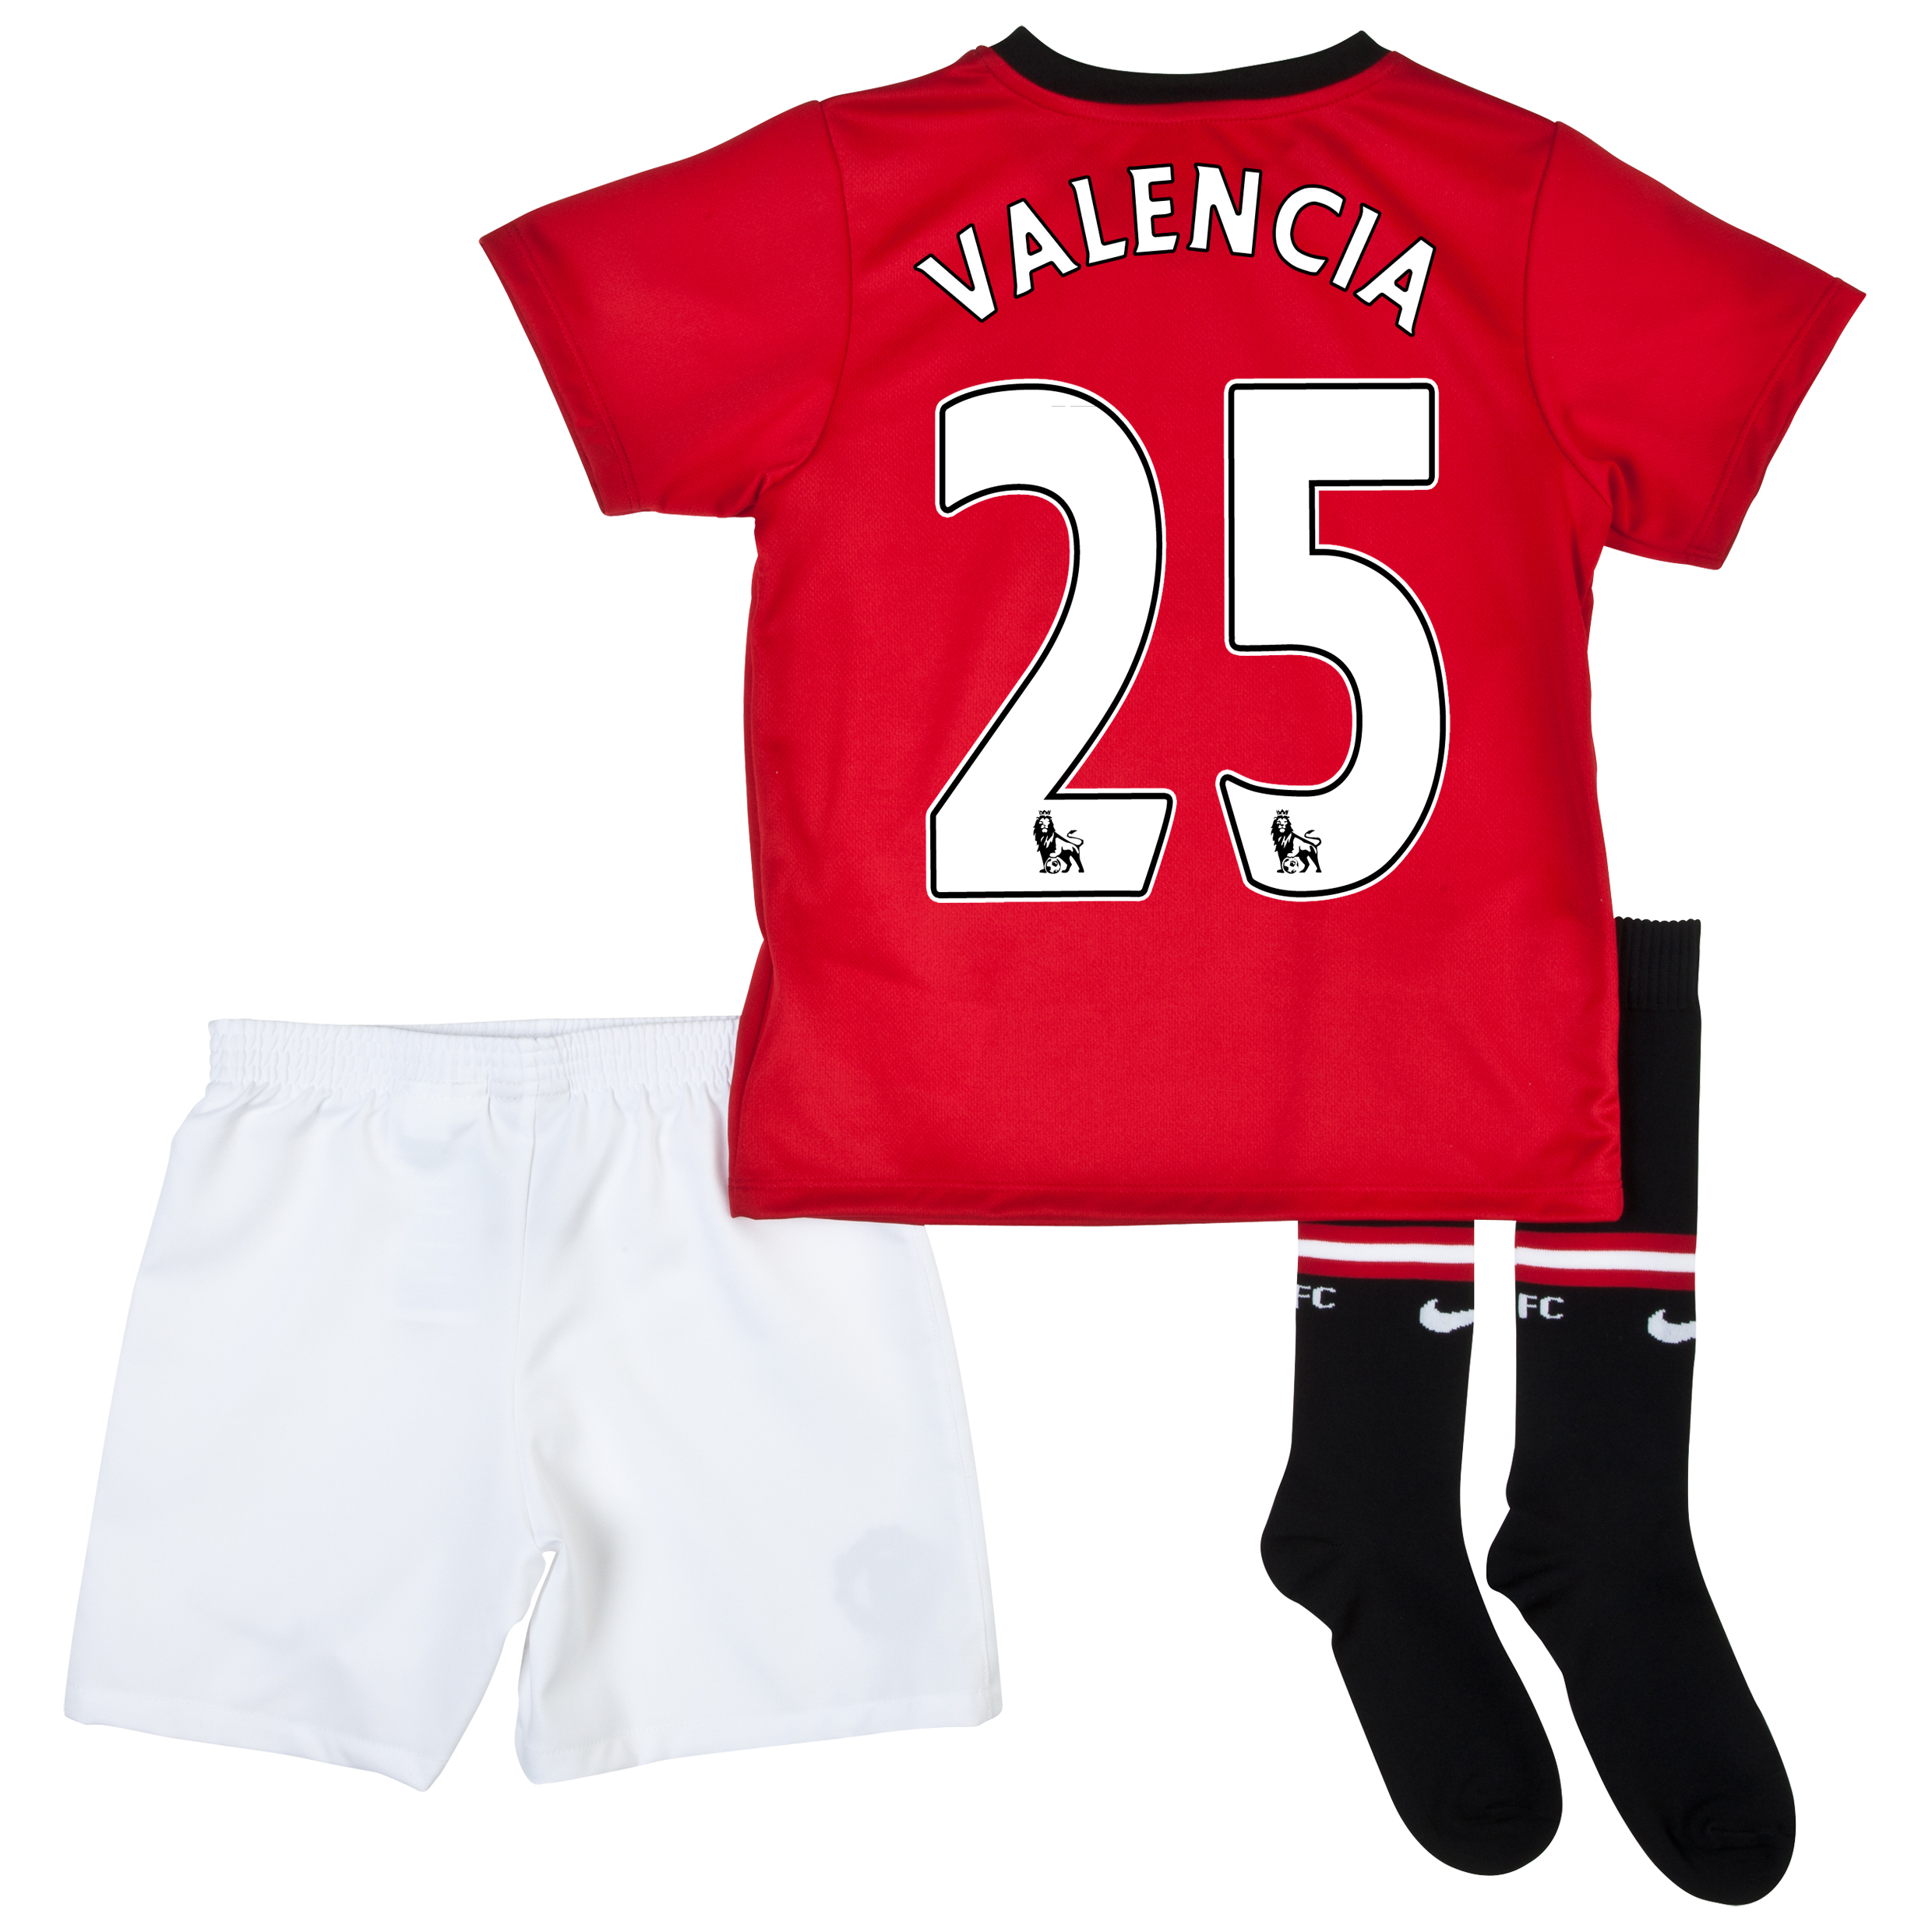 Manchester United Home Kit 2013/14 - Little Boys with Valencia 25 printing